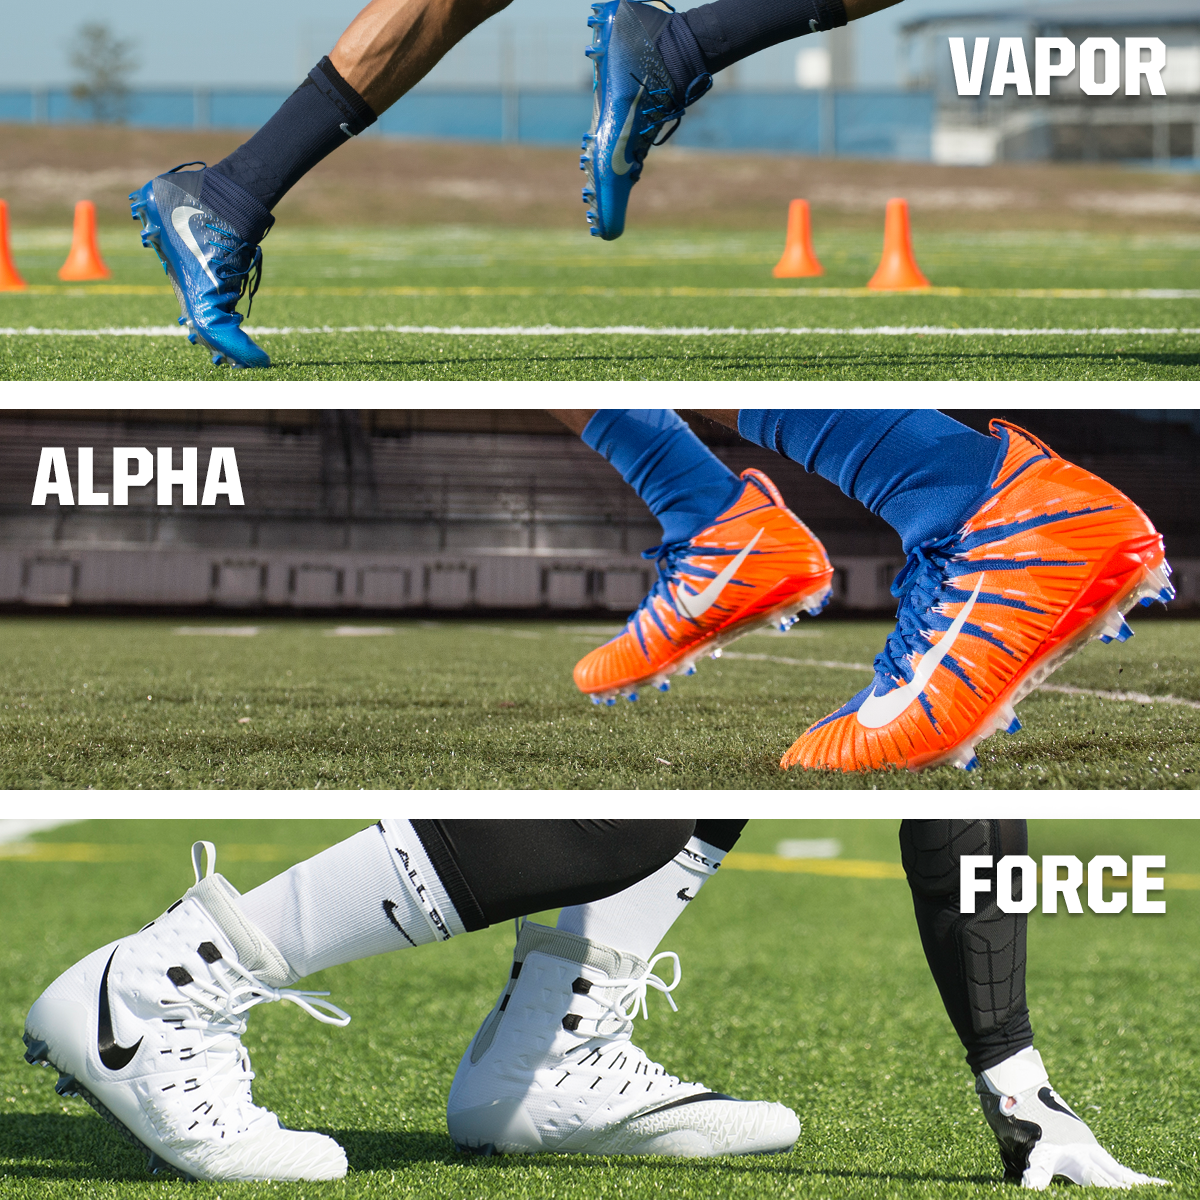 d7133a669 Nike Football Cleats: Will You Lace Up Like Odell, Russ, or Khalil? |  Eastbay Blog : Eastbay Blog